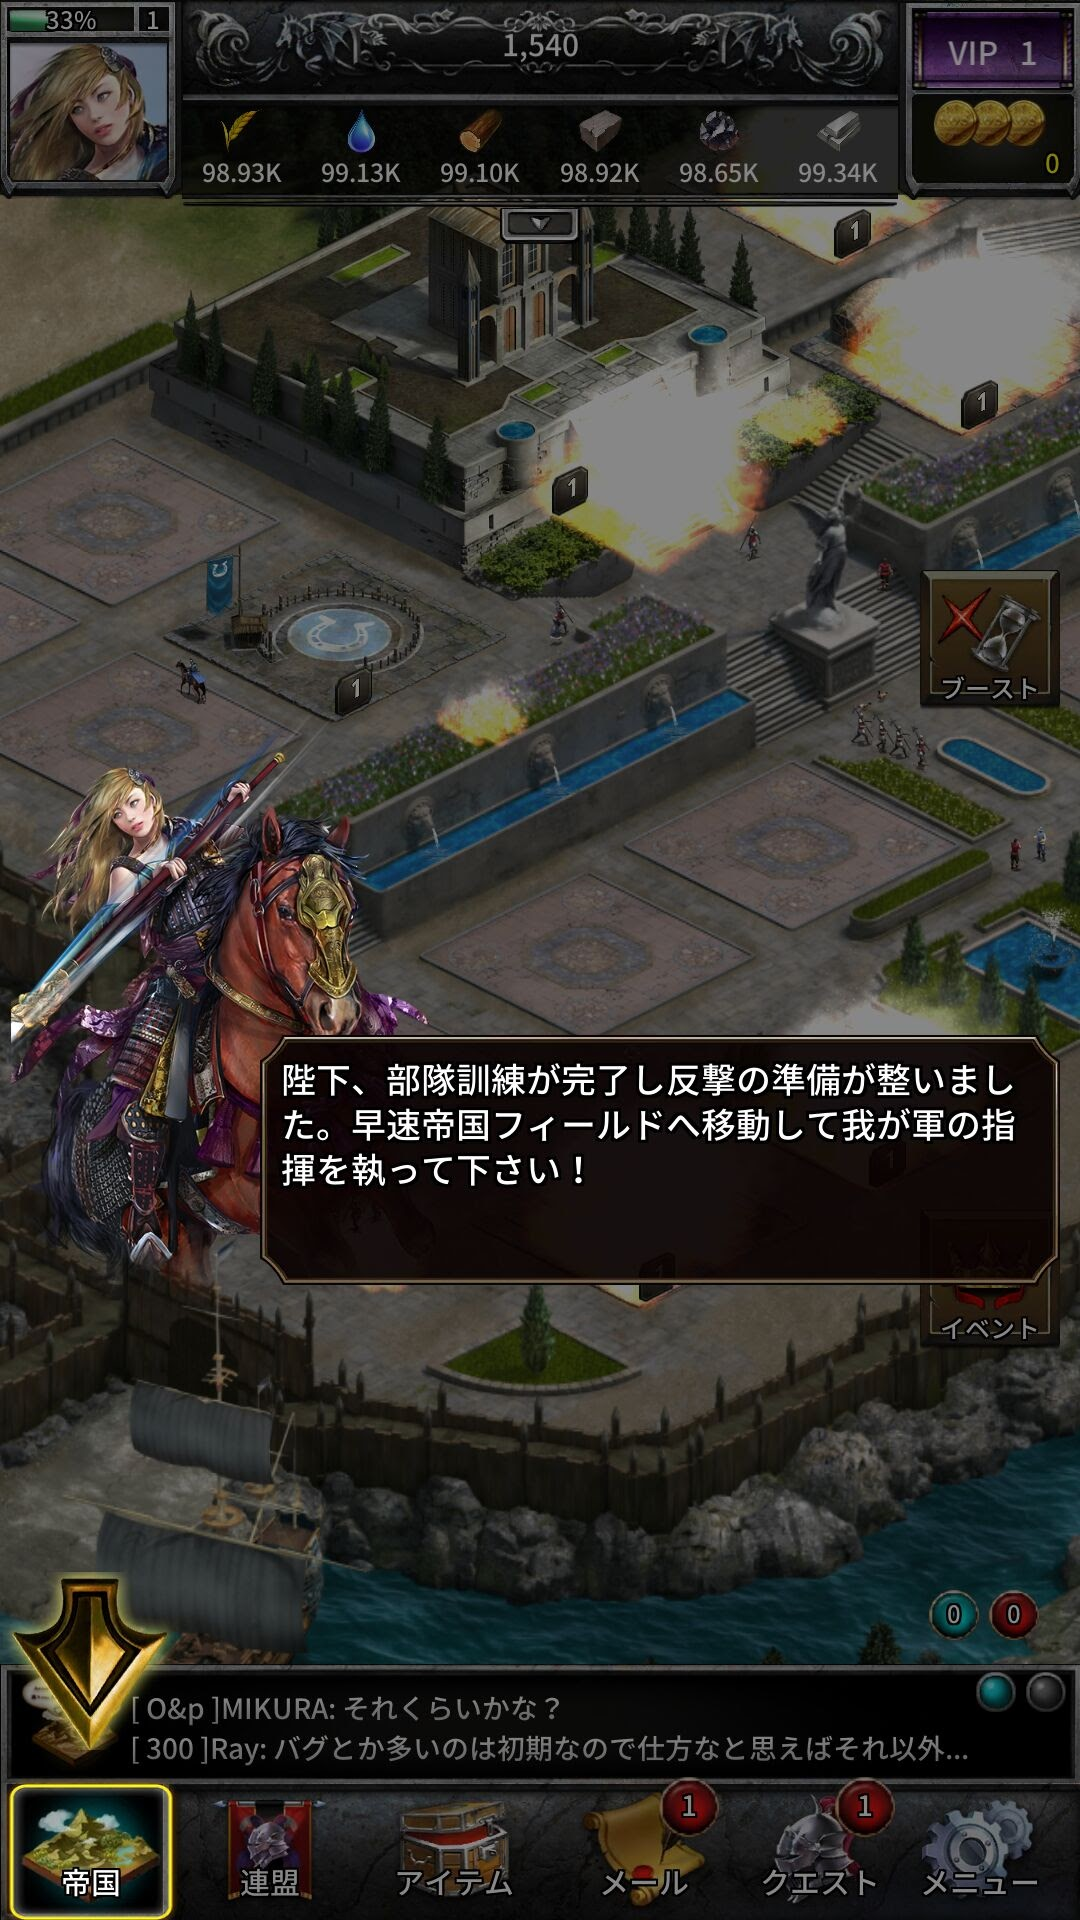 androidアプリ KOS - Kings of Sanctuary攻略スクリーンショット3